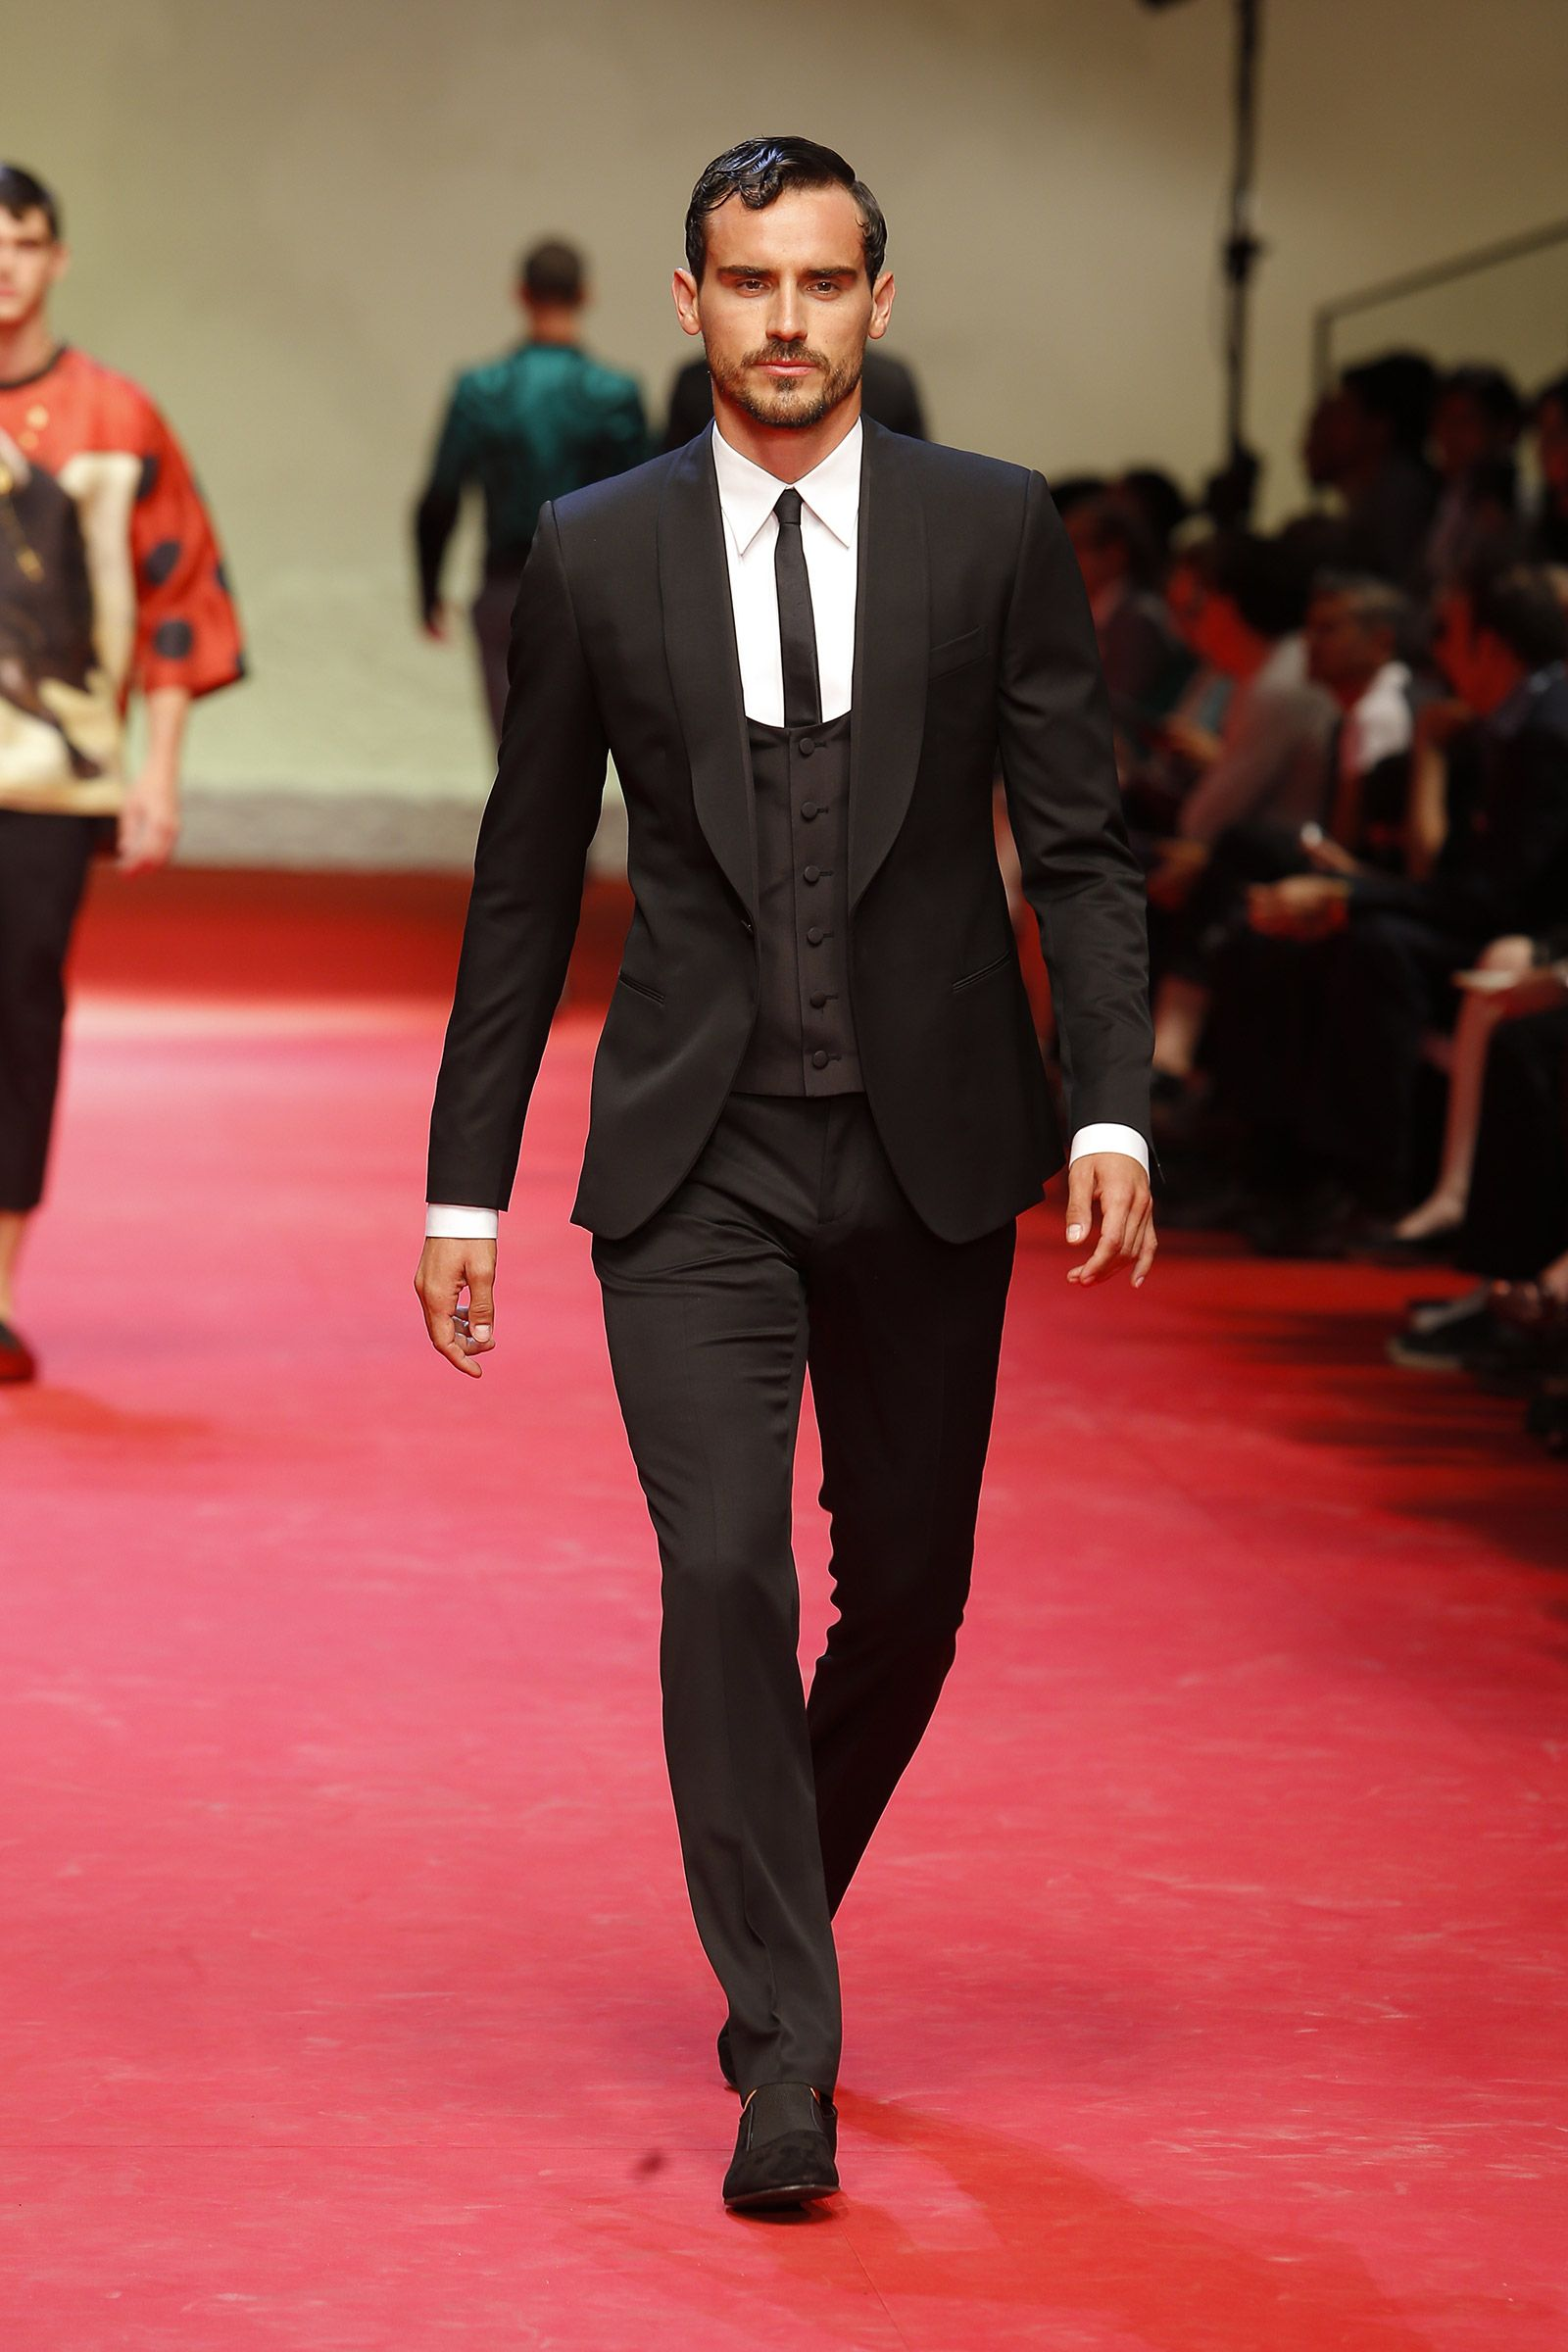 Moda Guardaroba Maschile Dolce Gabbana Man Catwalk Photo Gallery Fashion Show Summer